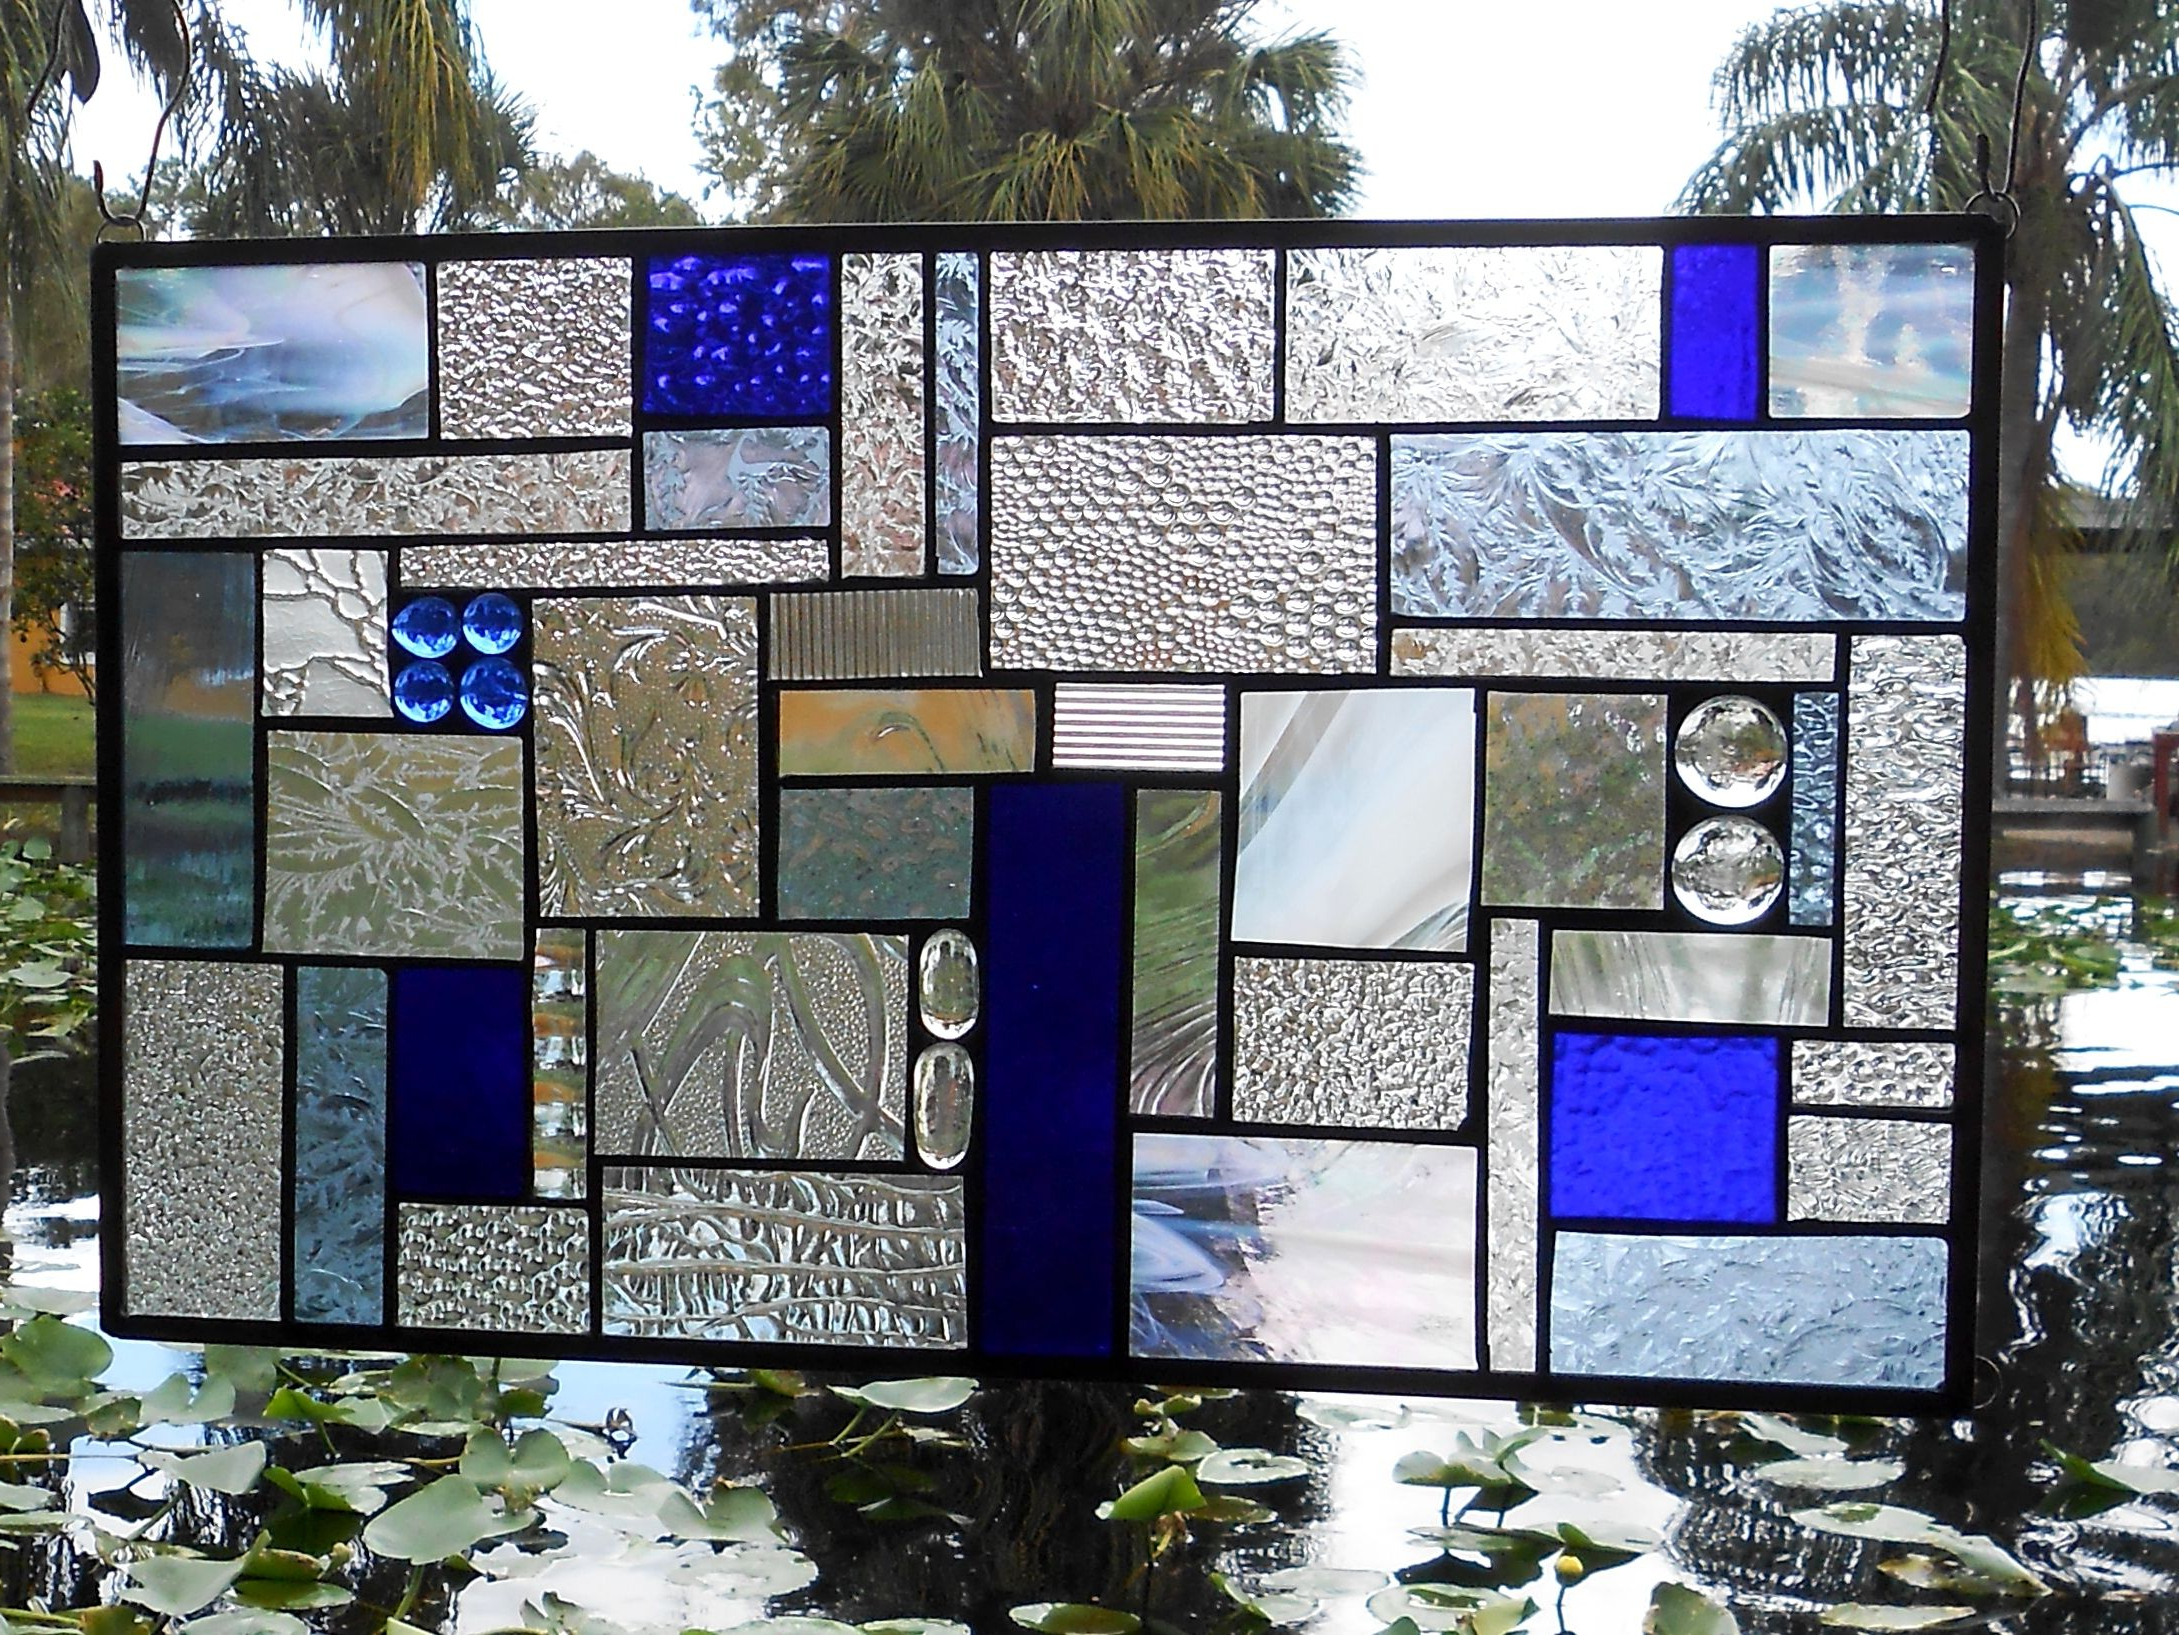 Stained Glass Panel Shades Of Blue Crazy Quilt Patchwork Geometric Stained  Glass Window Transom Intended For Blue Stained Glass Credenzas (View 20 of 20)